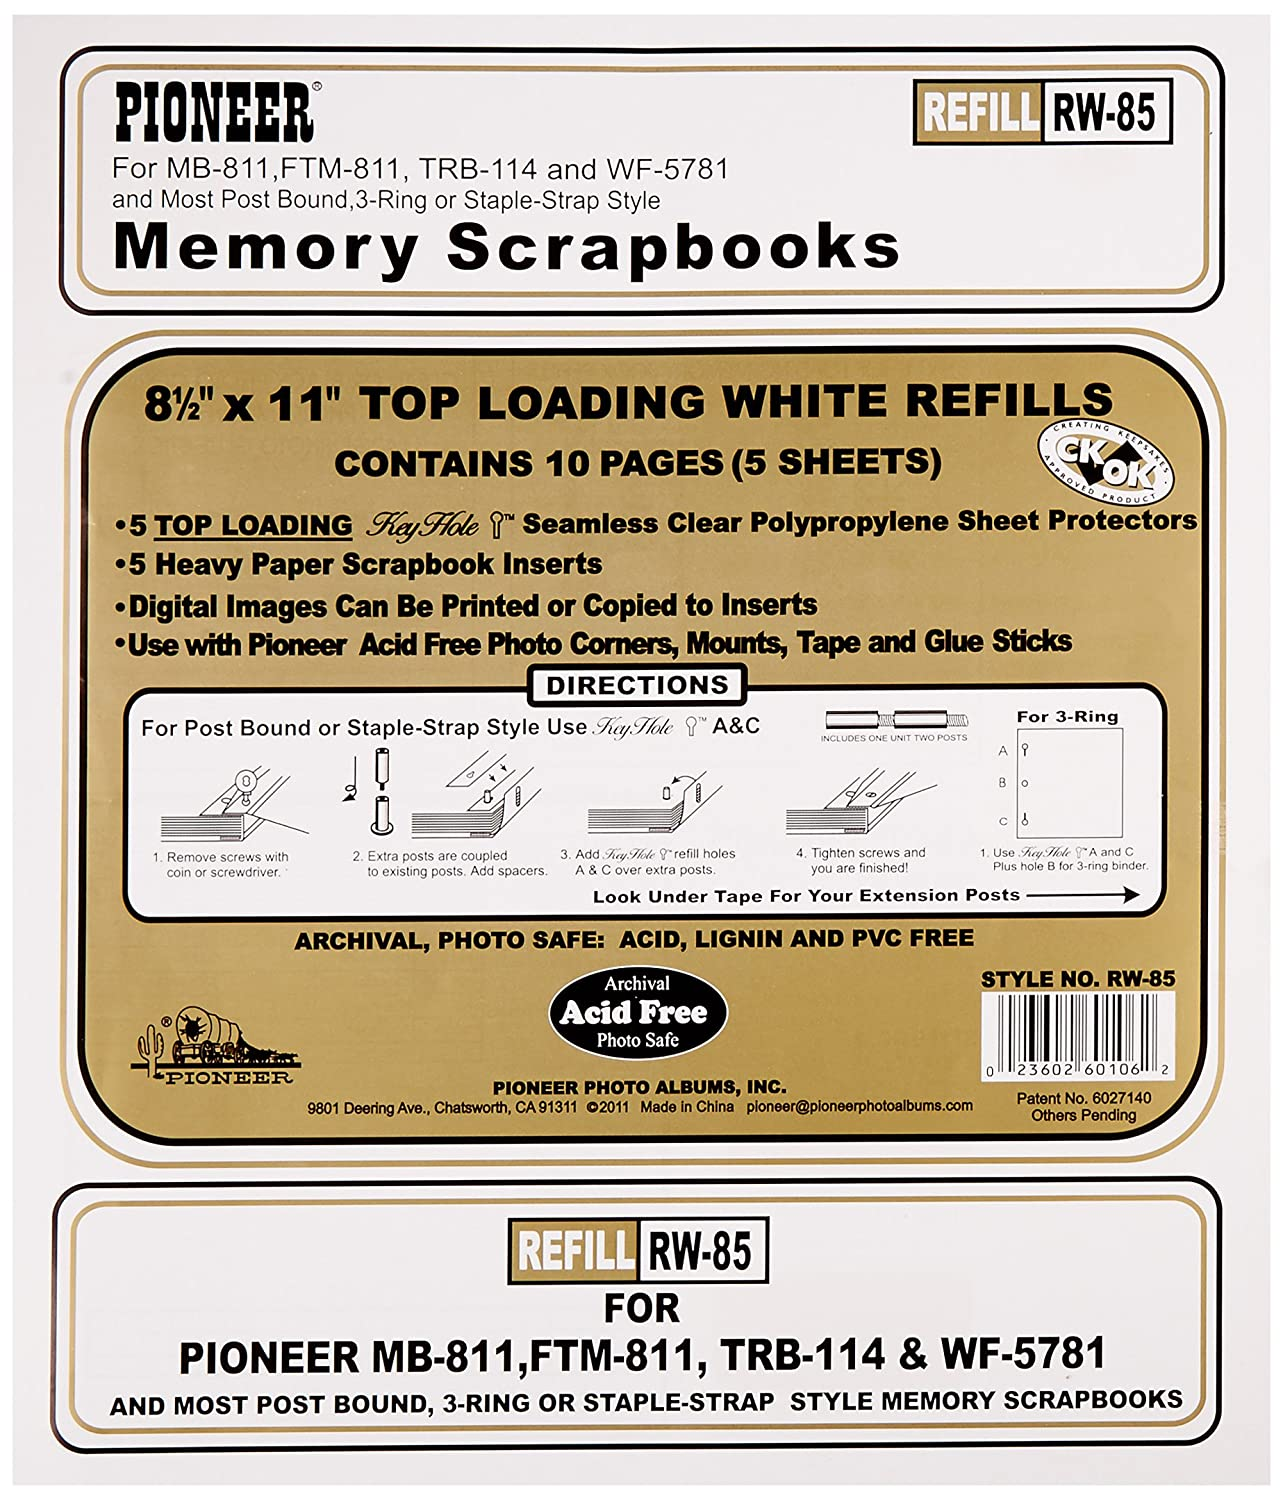 Pioneer Photo Albums Rw85 8.5 X 11 White Top Loading Scrapbook Refill Pages 4336978192